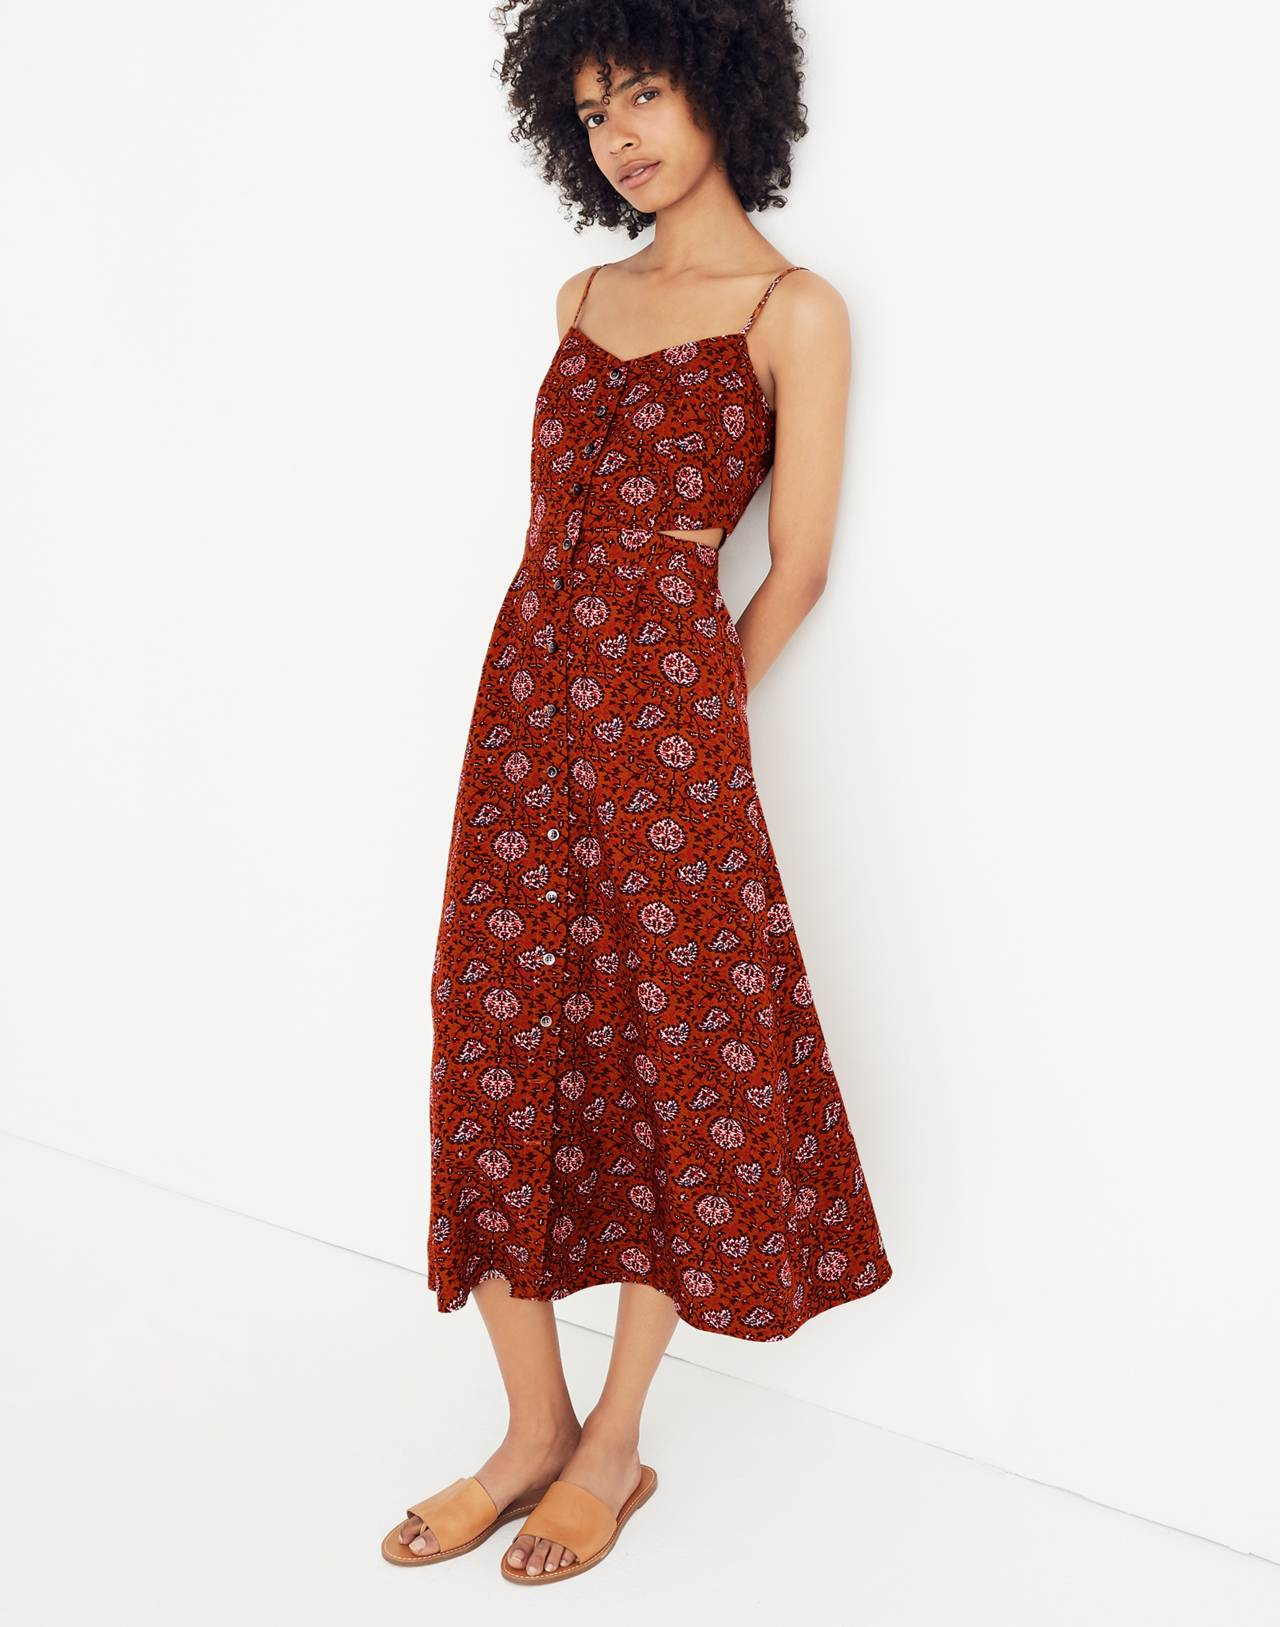 Cutout Cami Midi Dress in Warm Paisley in provincial burnt sienna image 1